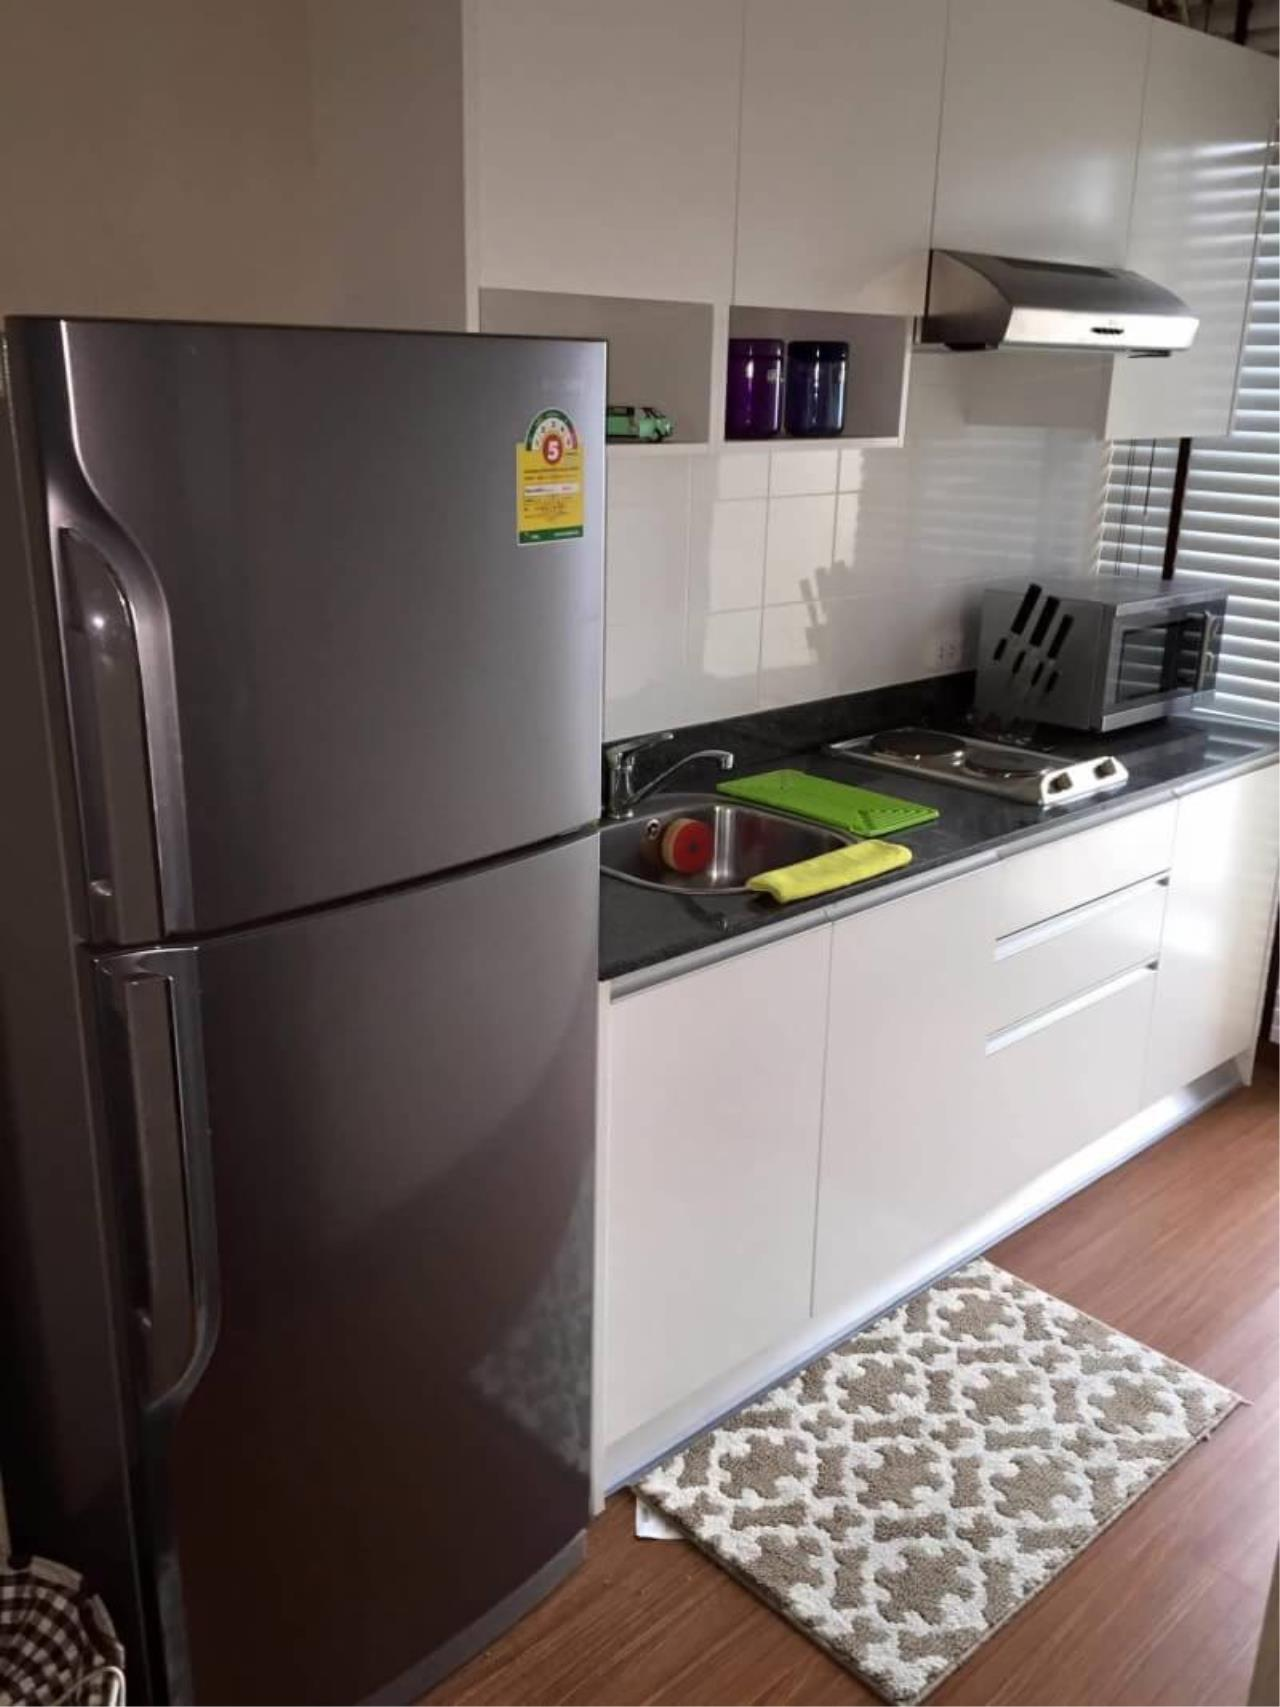 RE/MAX All Star Realty Agency's Diamond Sukhumvit for rent (BTS On Nut) 2